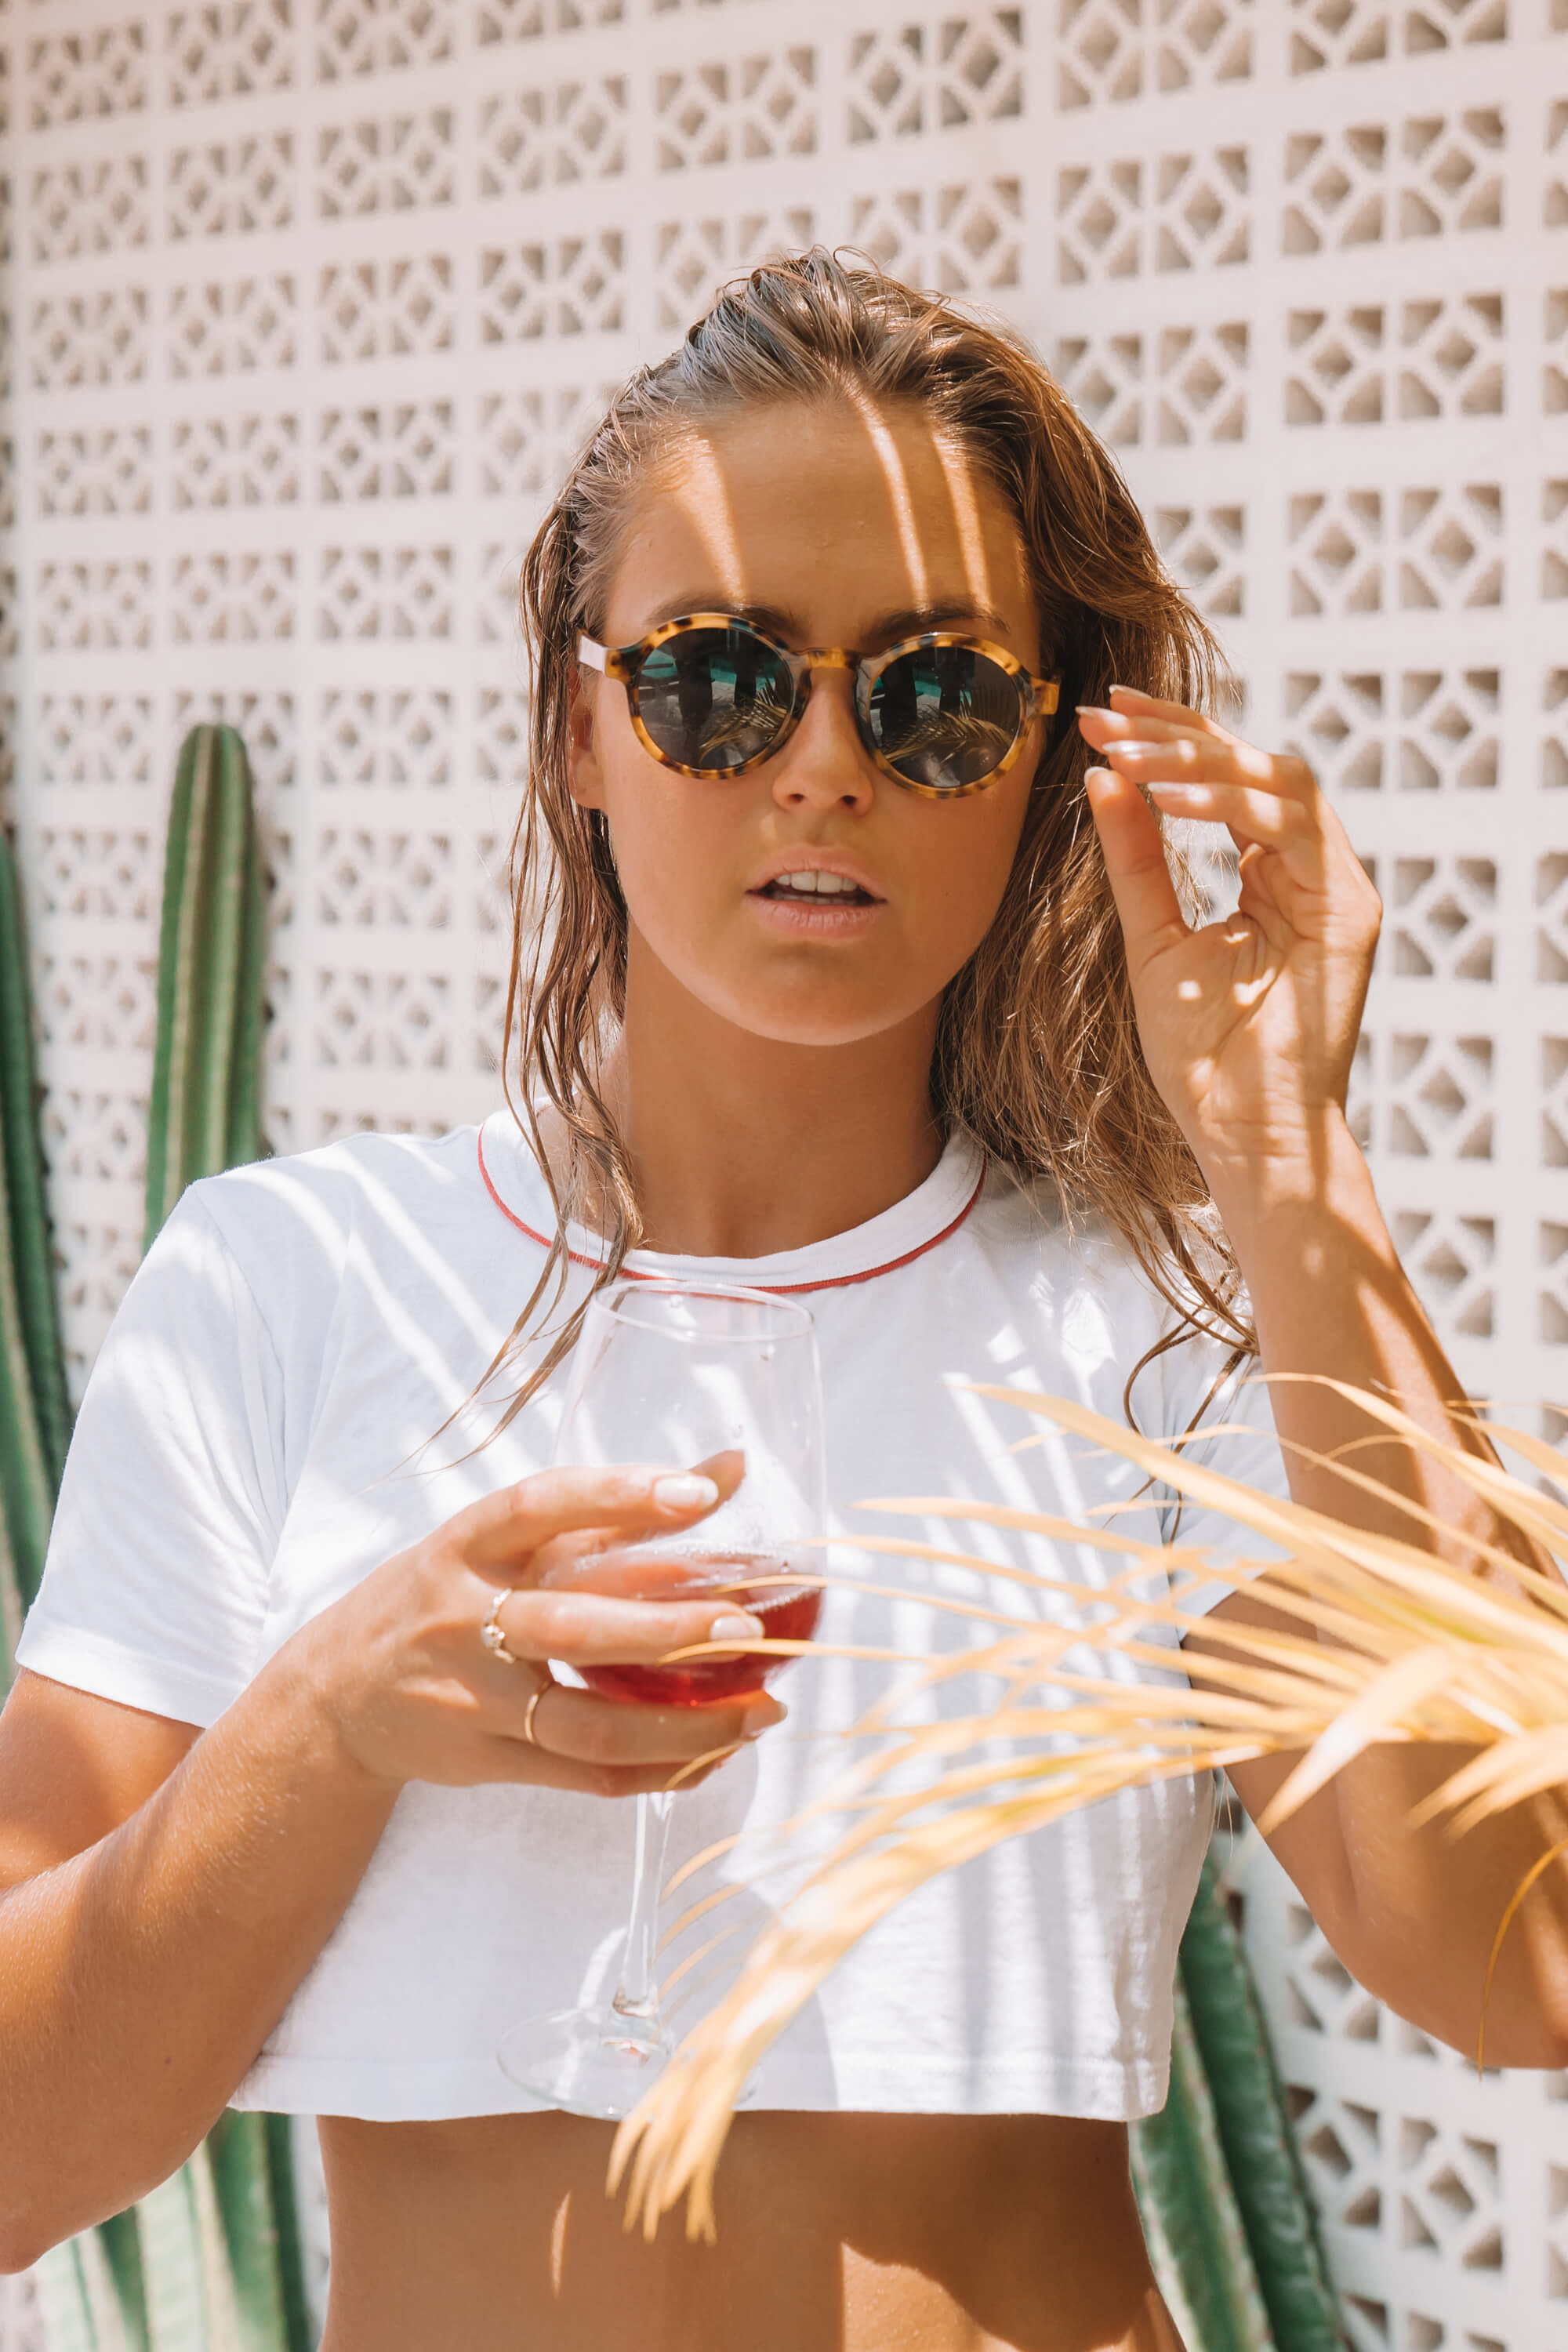 Soda Shades of Summer Australias best sunglasses eyewear online brand – Steph, Bali _-26